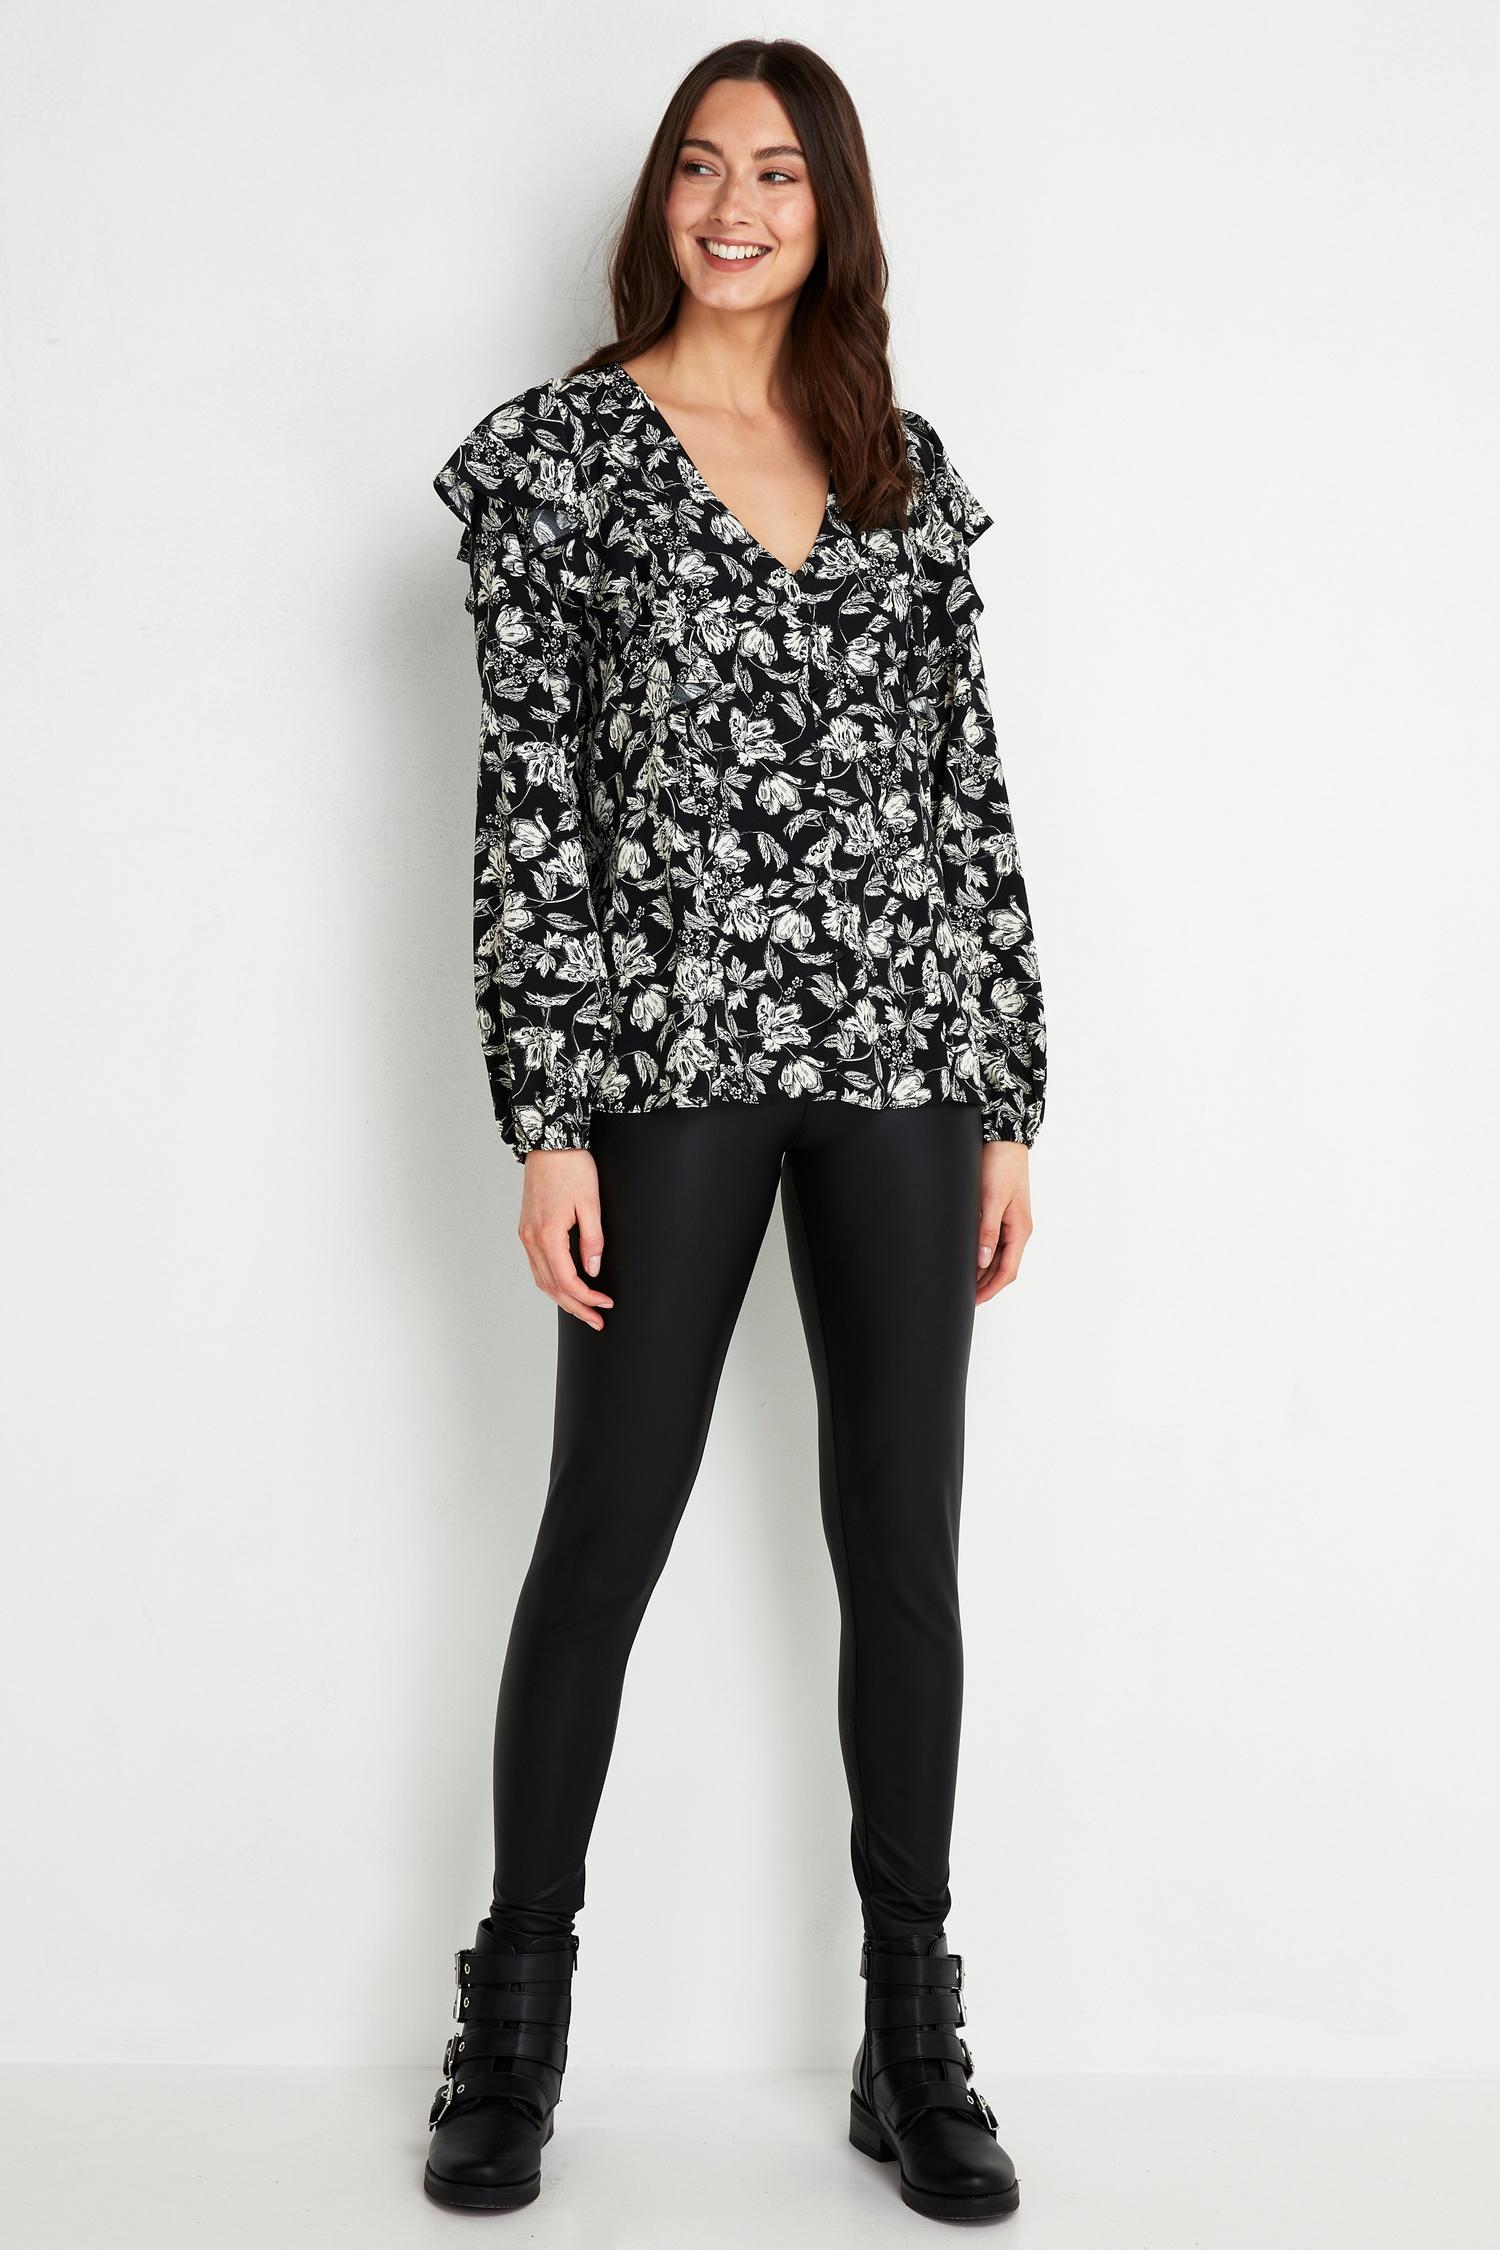 585 Monochrome Floral Print Ruffle Top image number 3